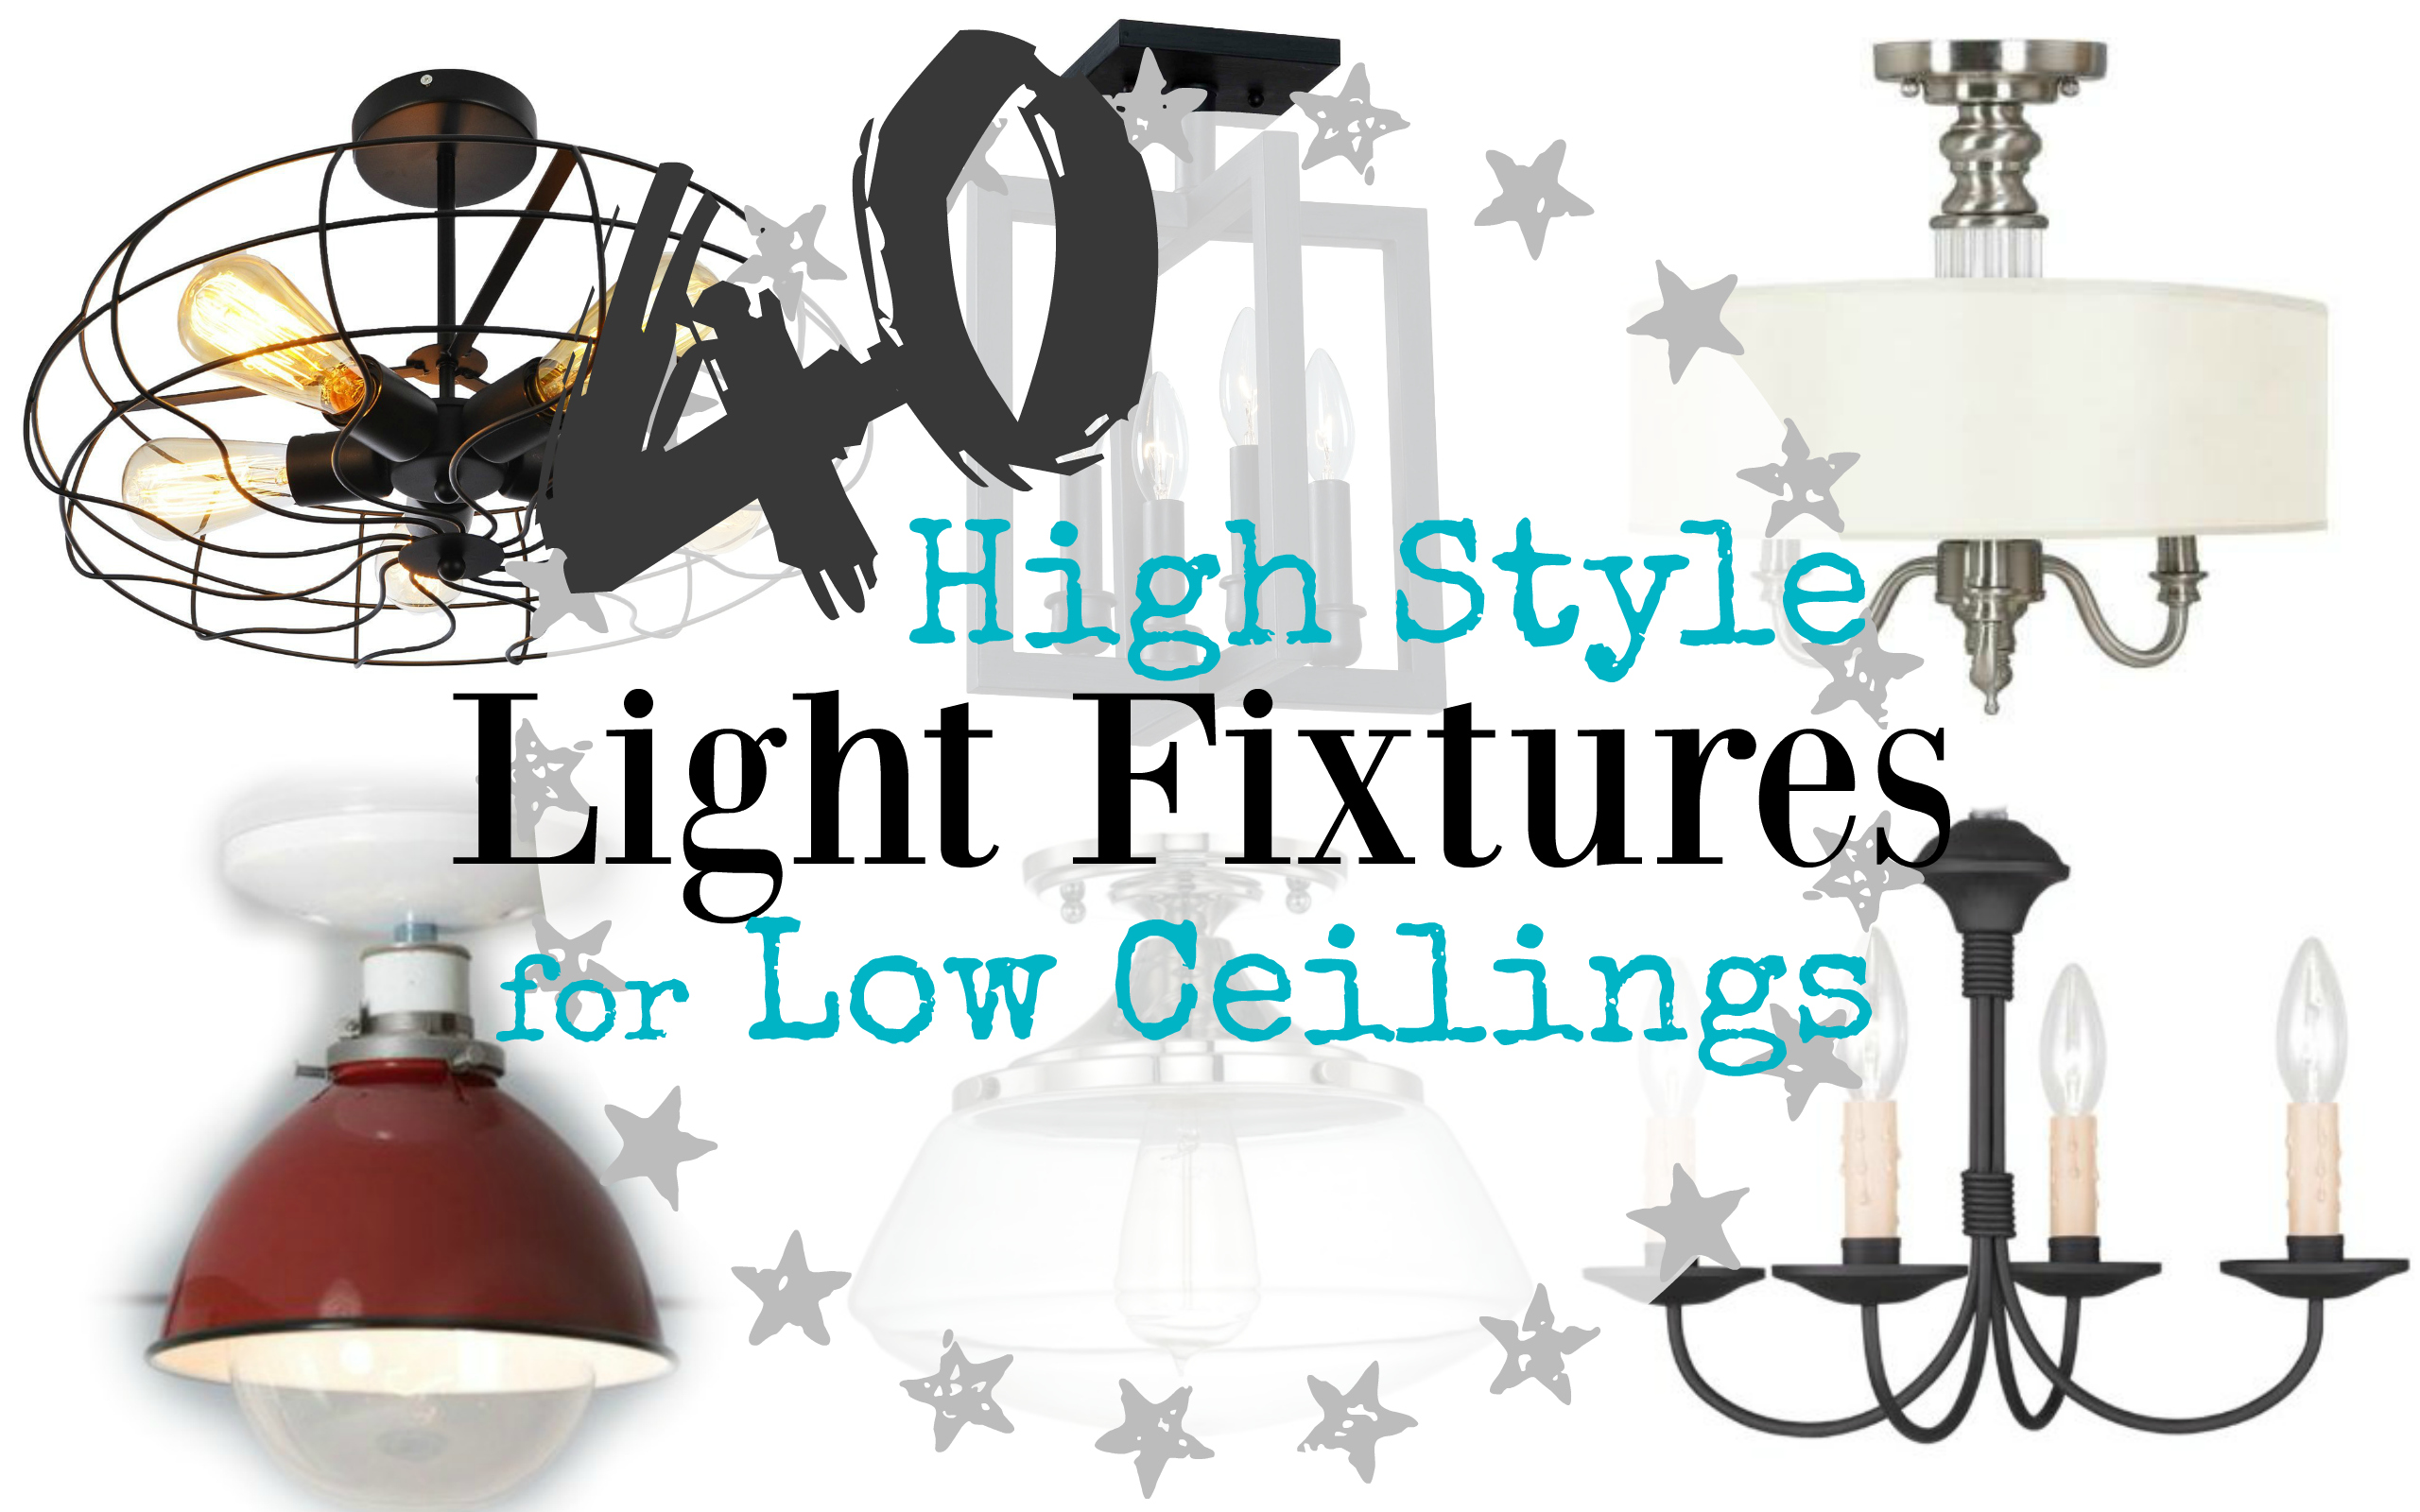 don't have high vaulted ceilings, but still want eye catching lights fixtures Here are 40 semi flush light fixtures that are perfect for low ceilings